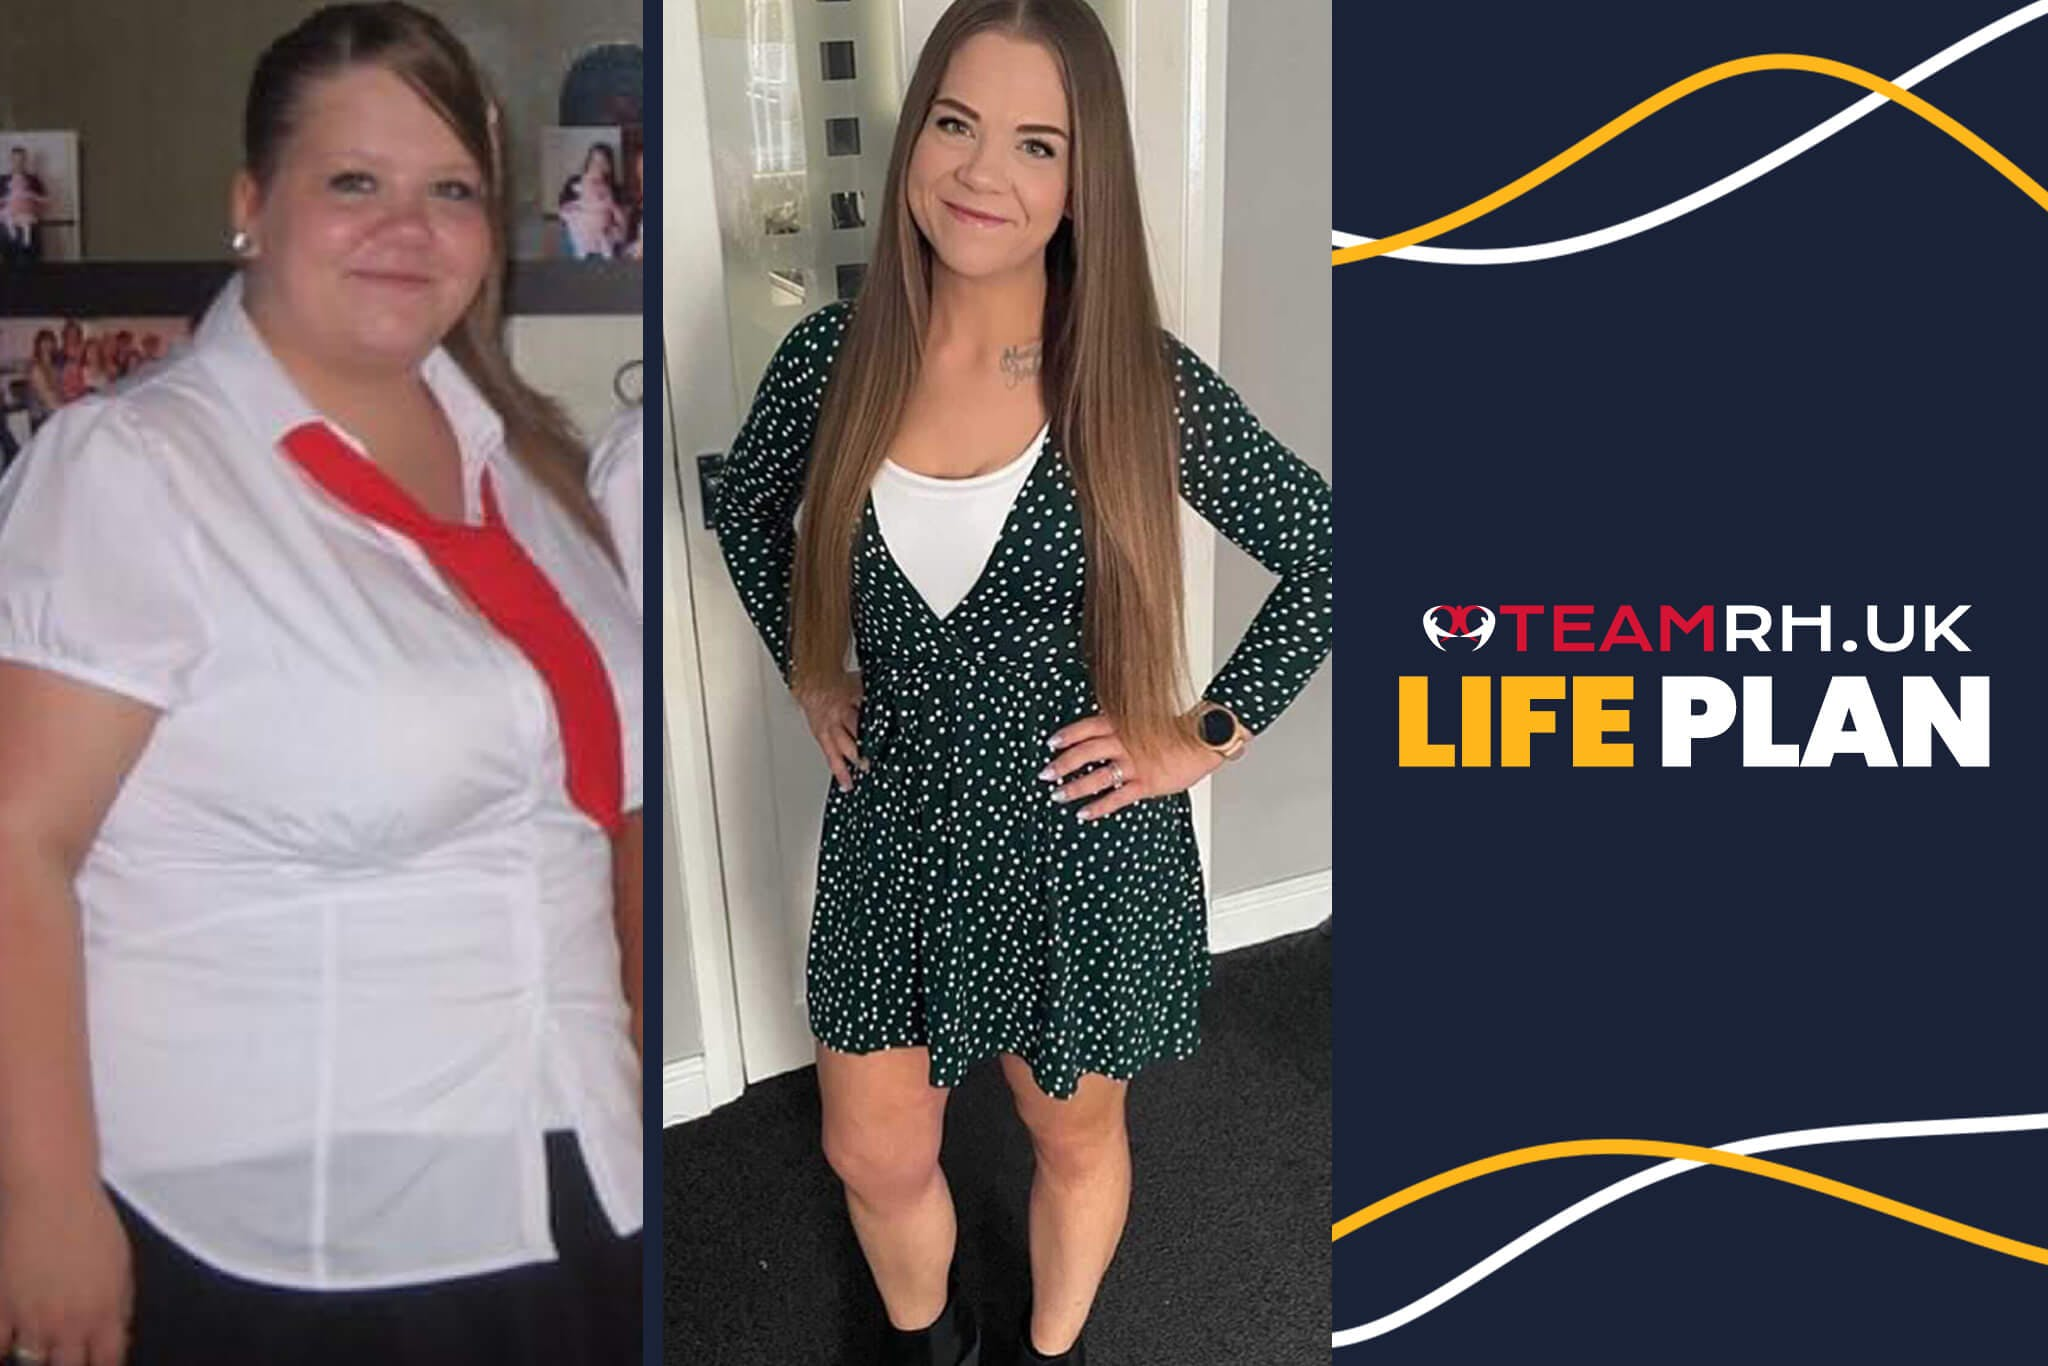 emma-lost-100lbs-after-being-told-by-the-doctor-she